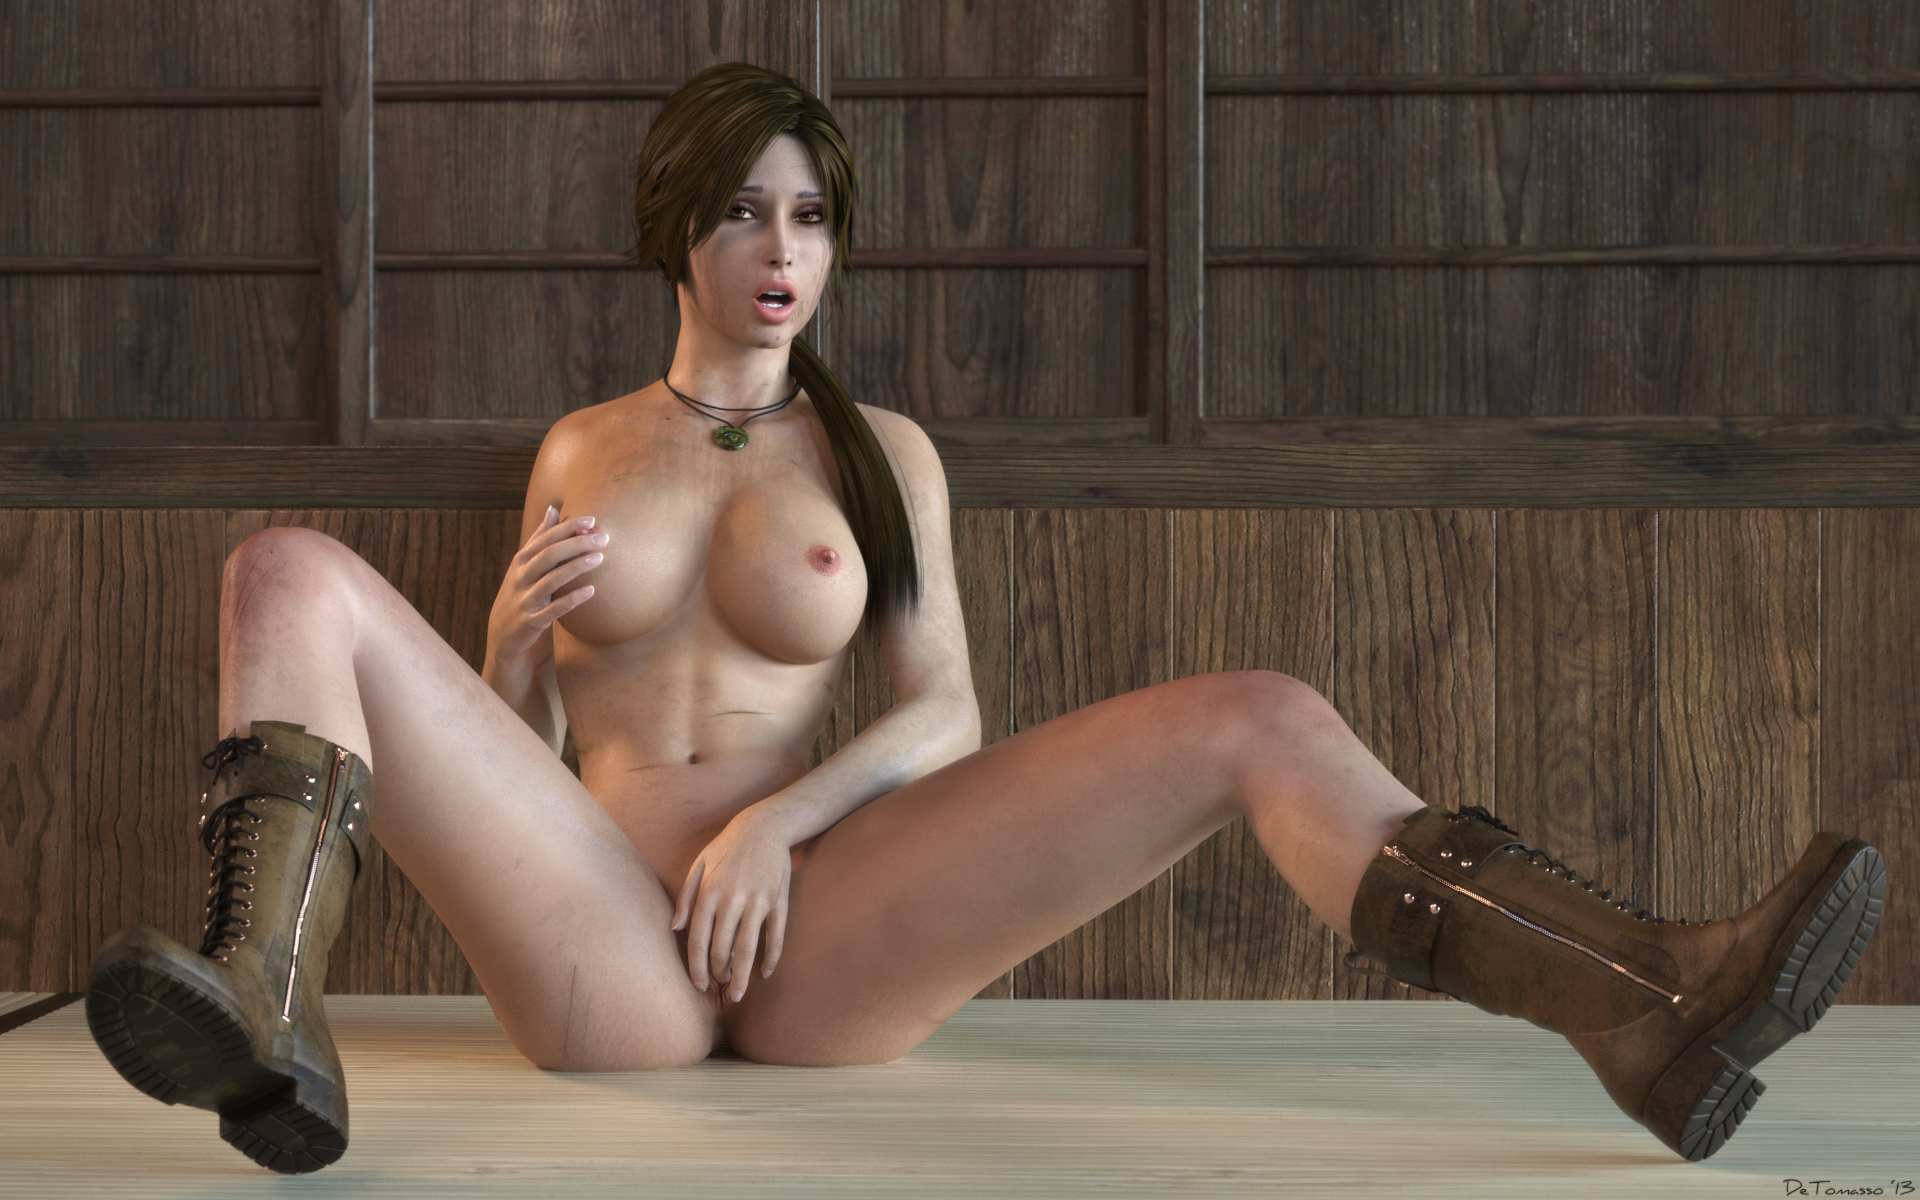 Lara crafts tits tomb raider sexy photos nackt movies